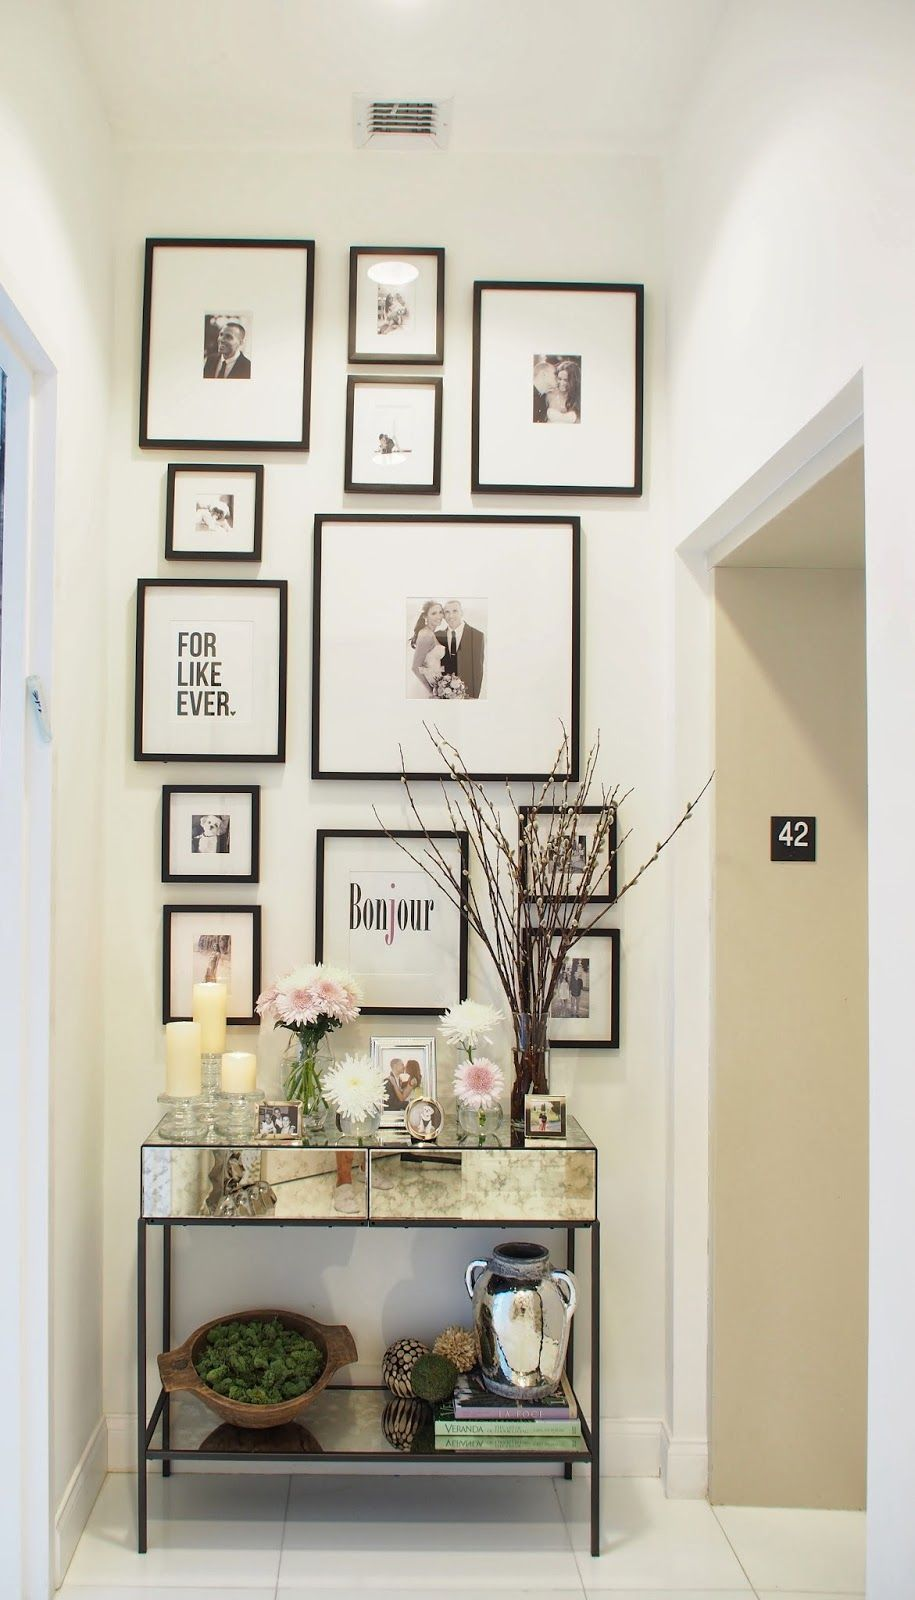 Spring Entryway Decor With Images Entryway Wall Decor Entryway Decor Small Entryway Decor